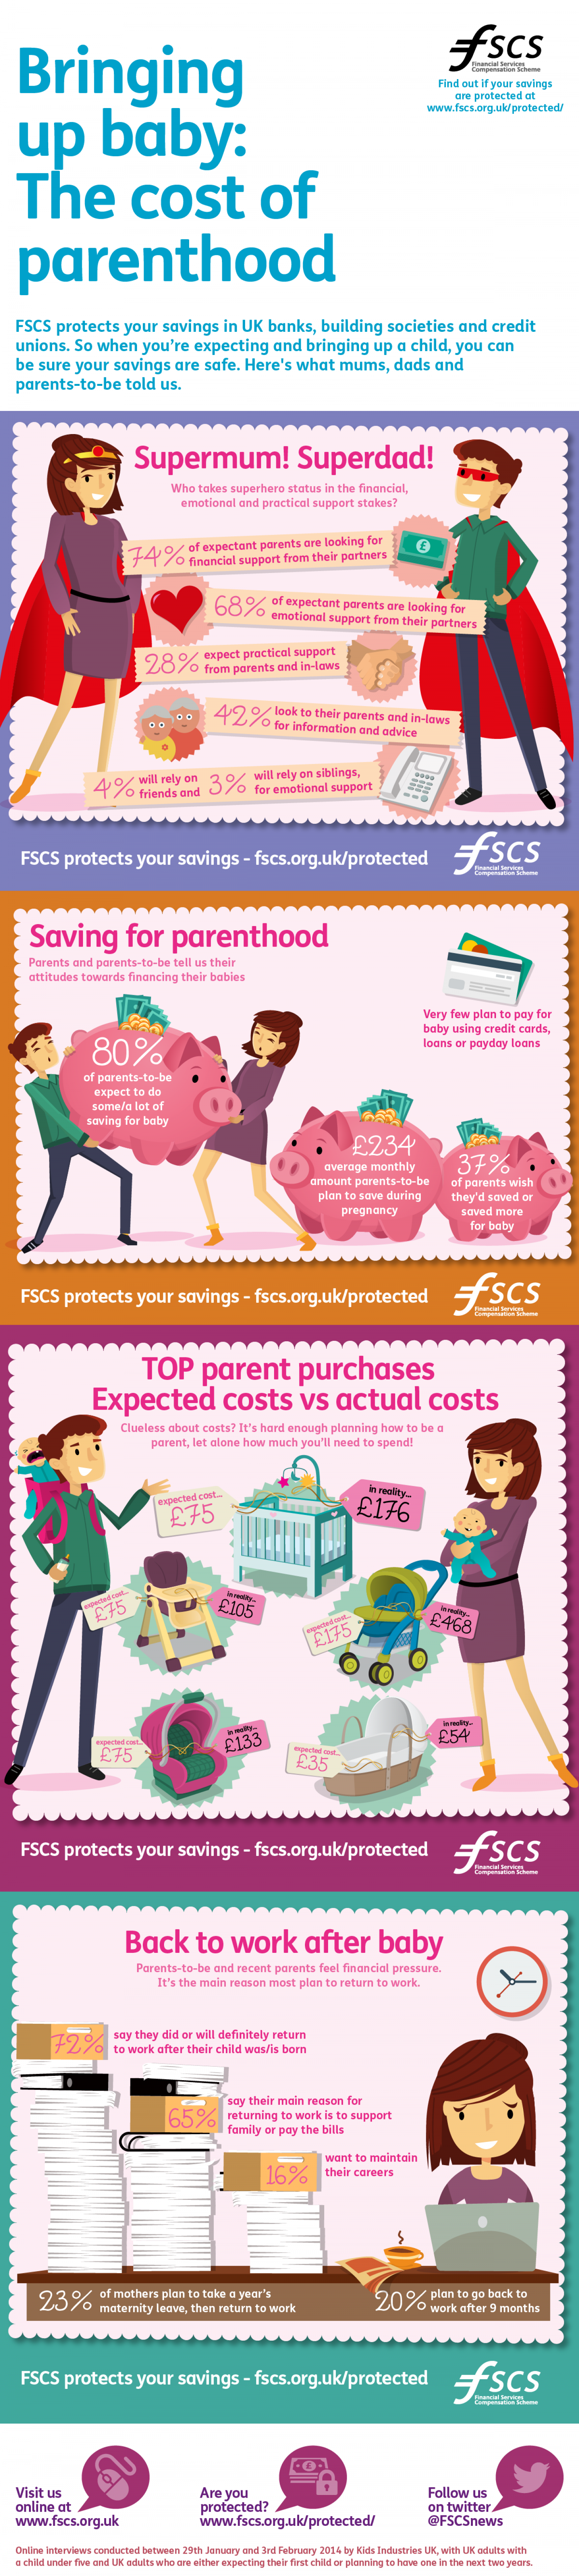 Bringing Up Baby: The Cost of Parenthood Infographic